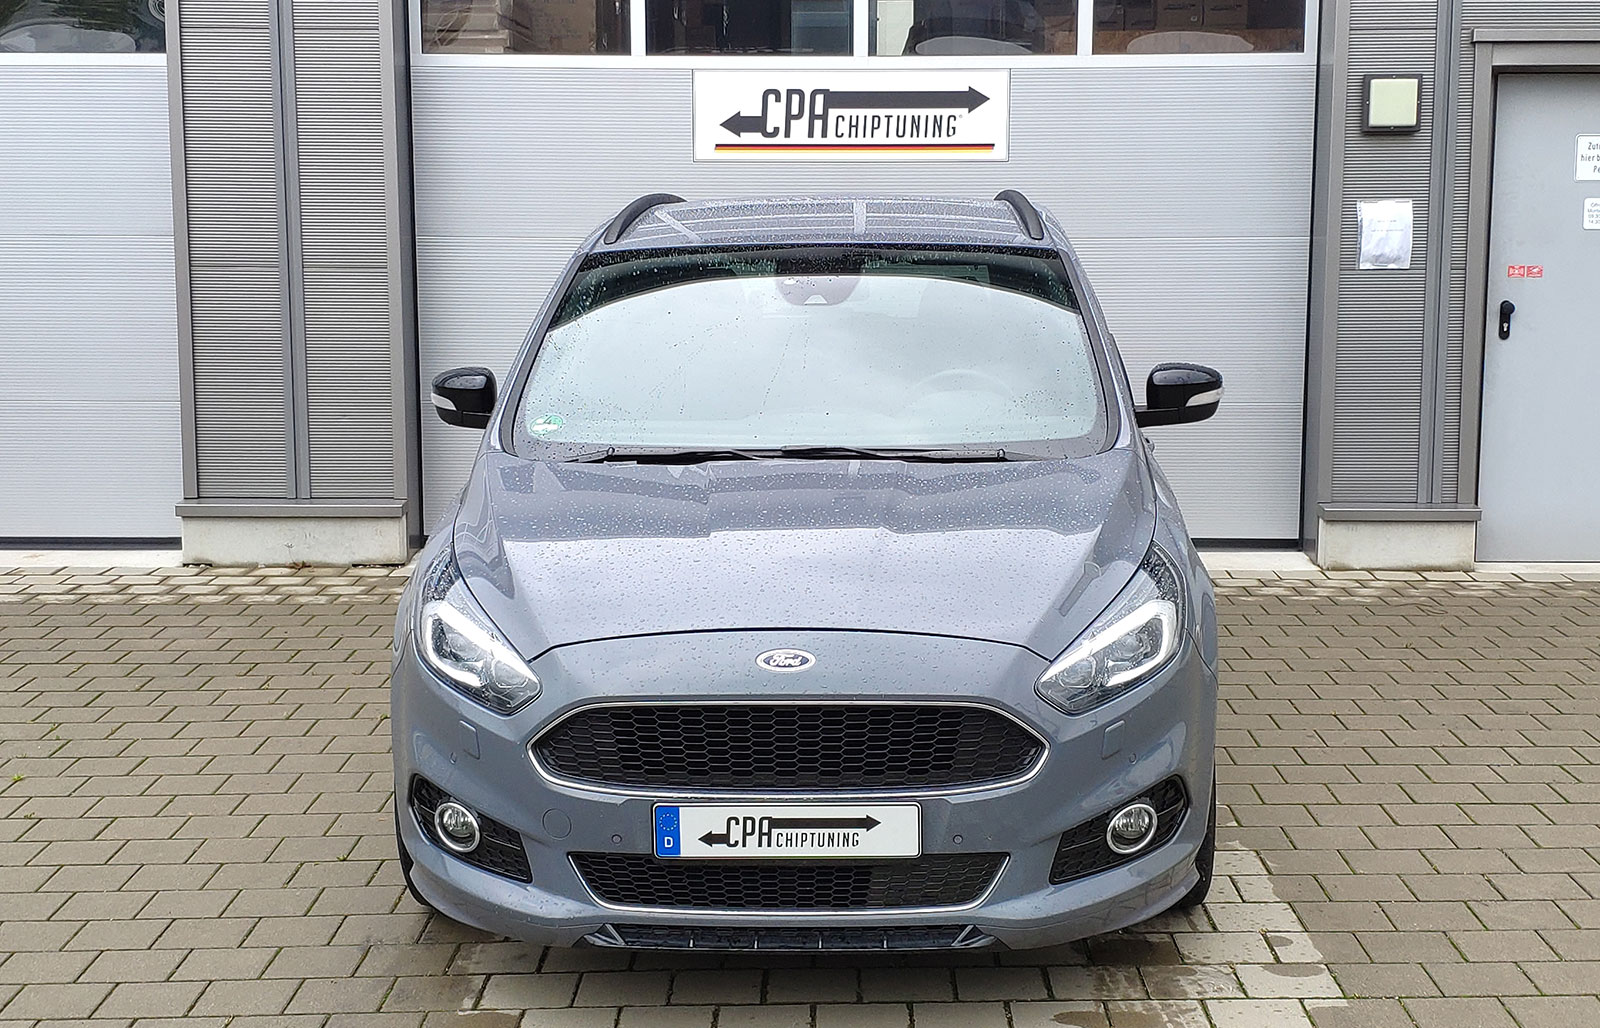 Ford S-Max II 2.0 EcoBlue chiptuning